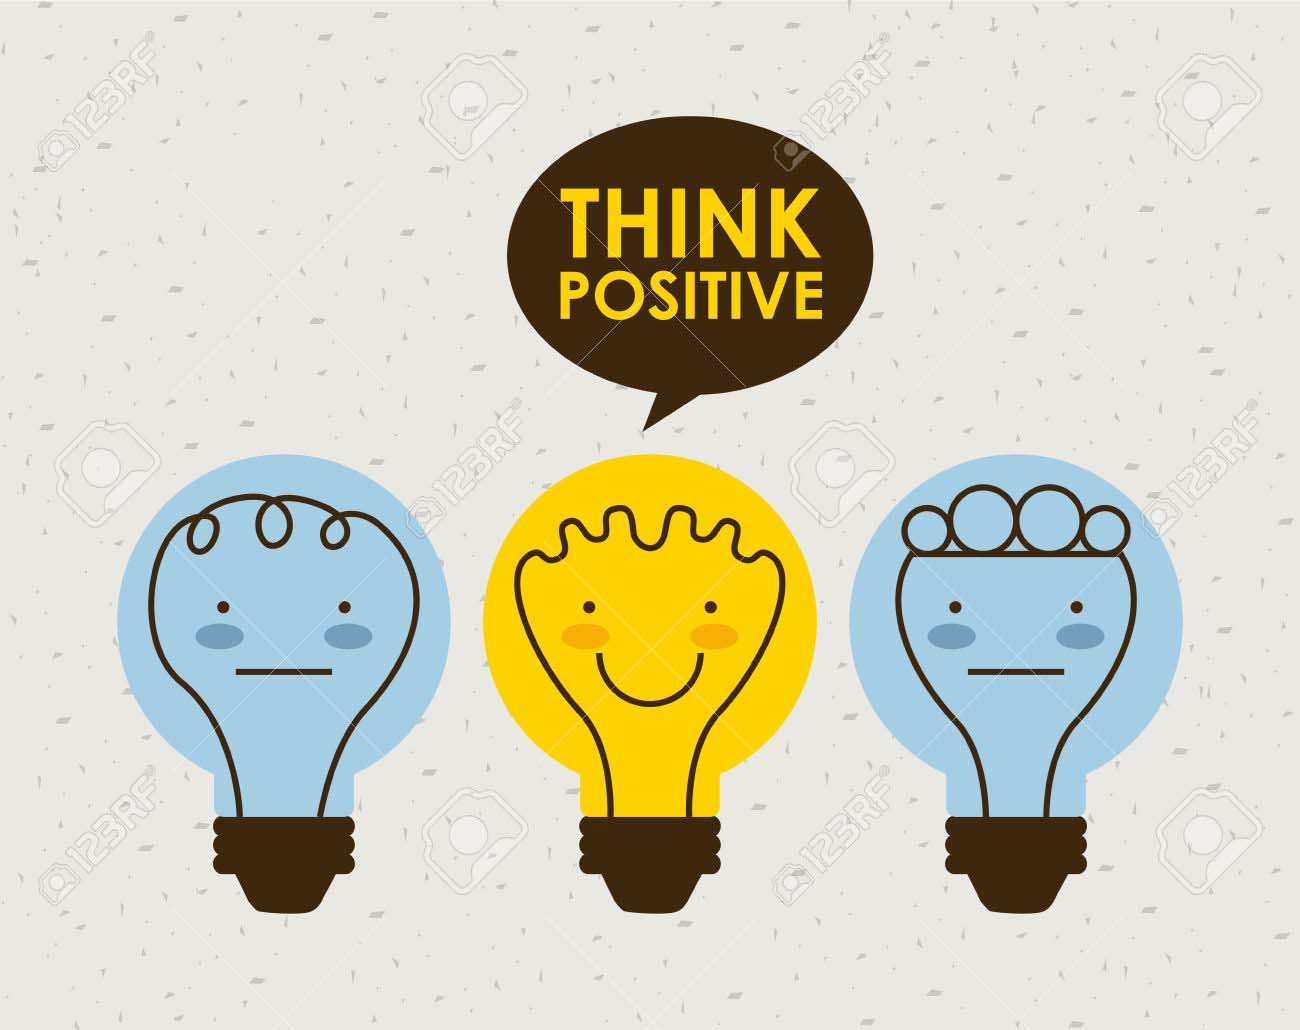 think positive graphic design , vector illustration